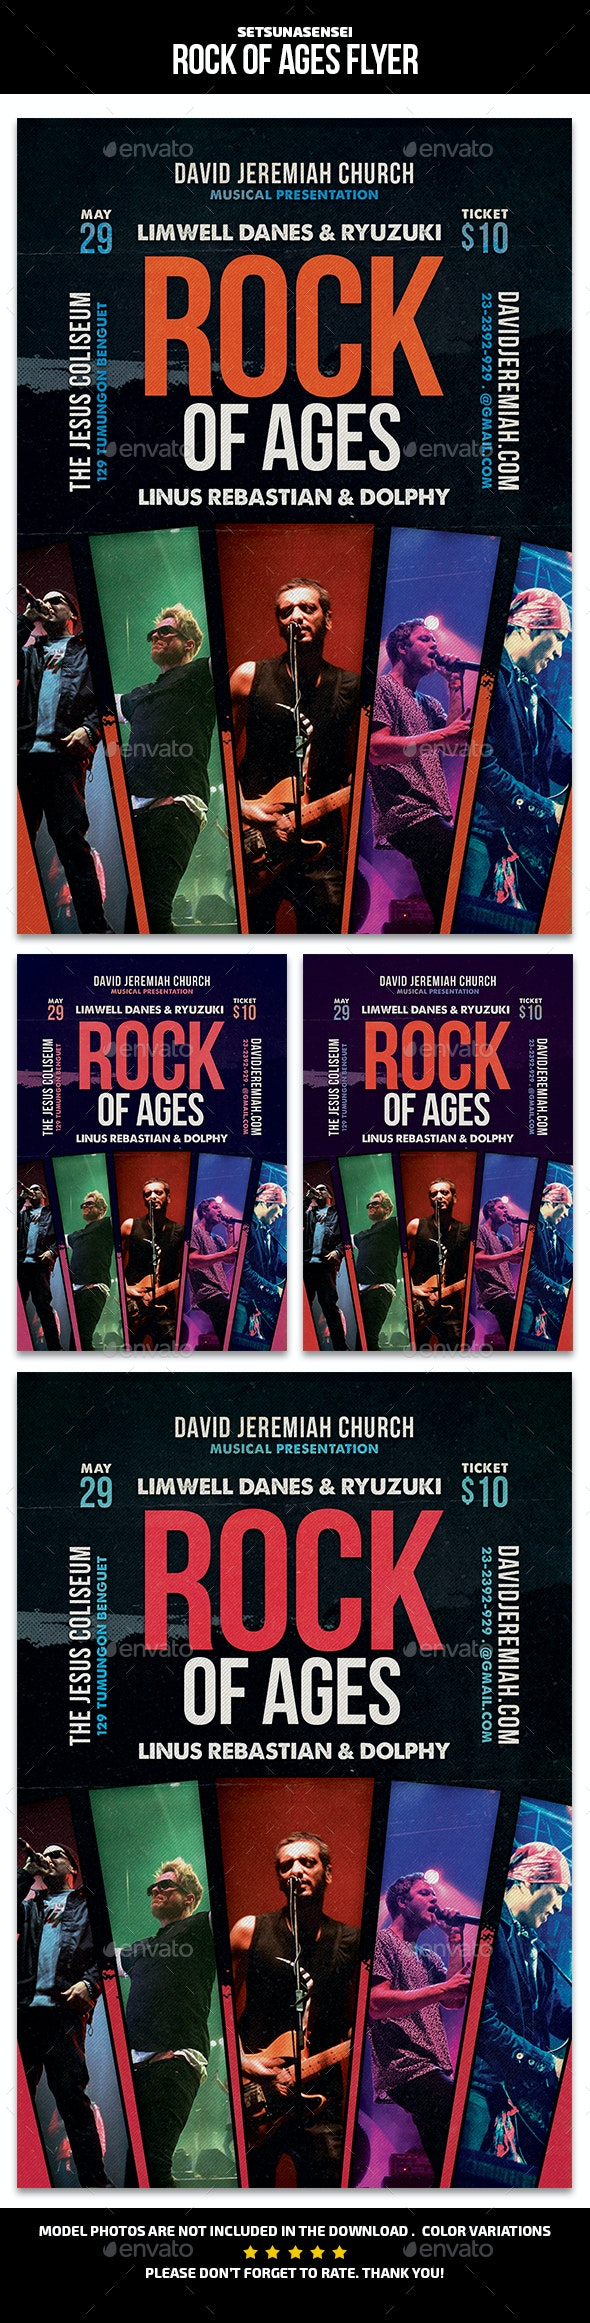 Rock of Ages Flyer - Events Flyers